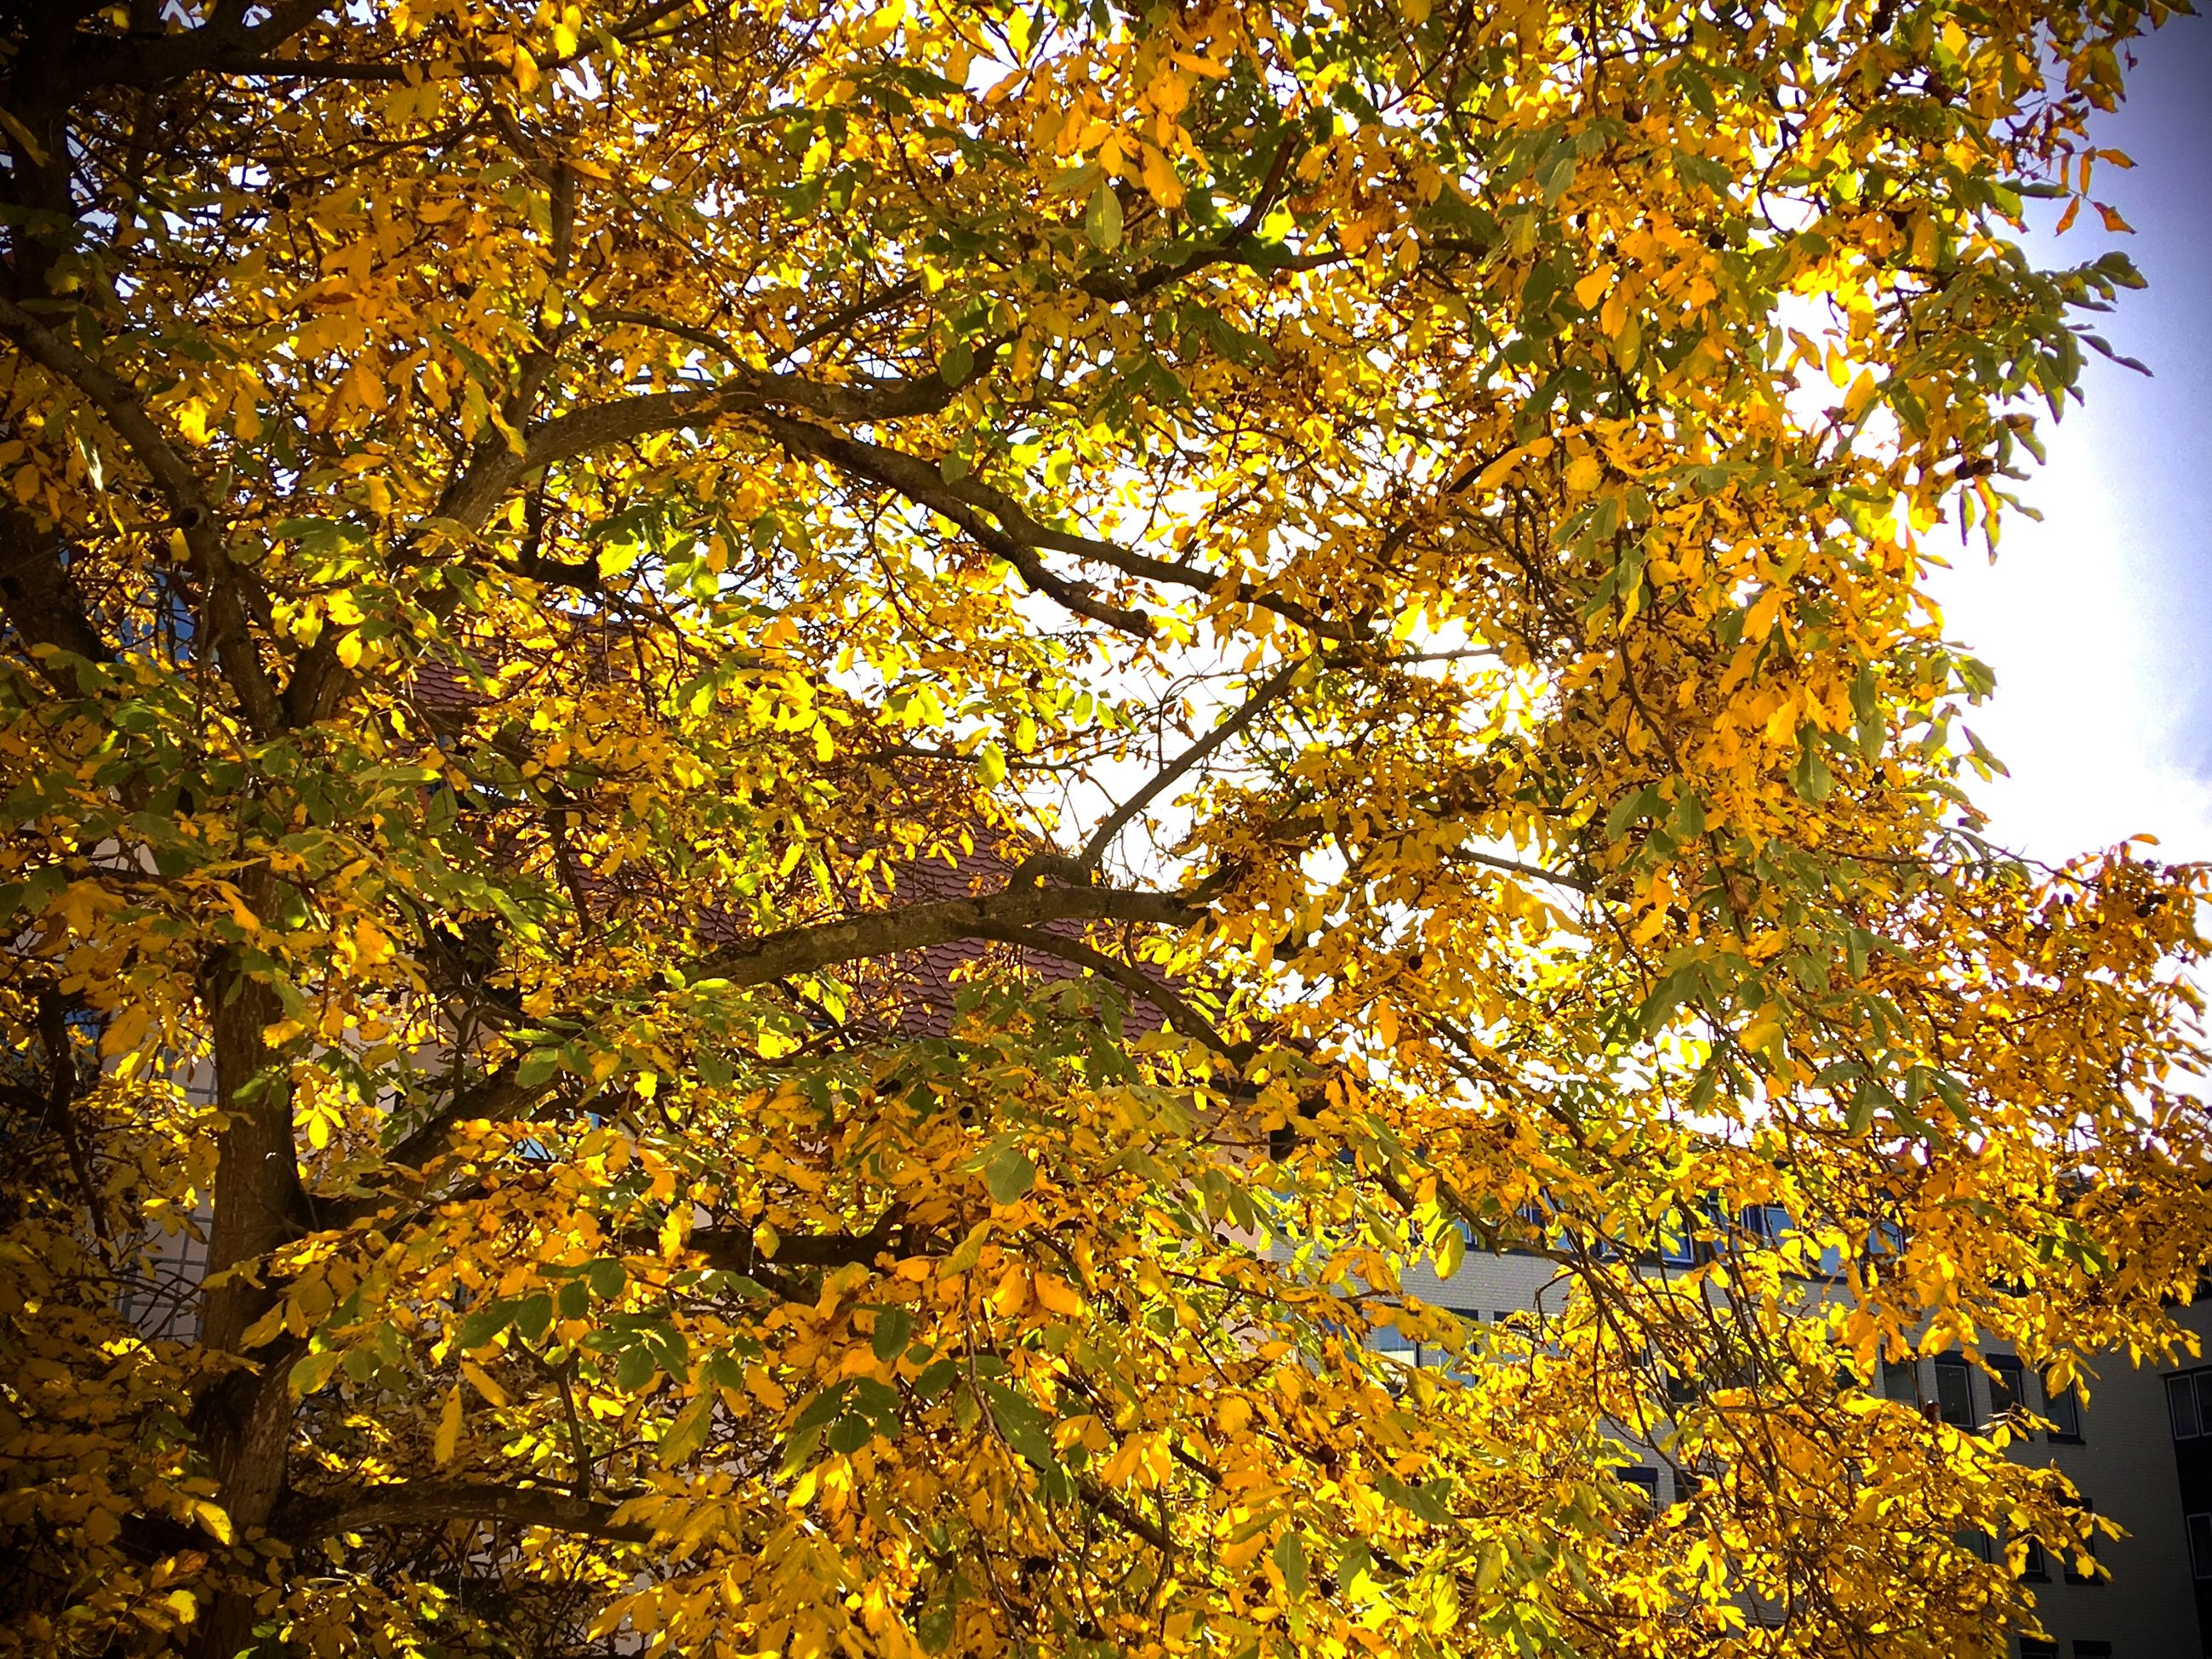 autumn, tree, plant, change, beauty in nature, growth, branch, low angle view, nature, yellow, no people, day, orange color, tranquility, outdoors, leaf, plant part, scenics - nature, sky, sunlight, tree canopy, natural condition, autumn collection, fall